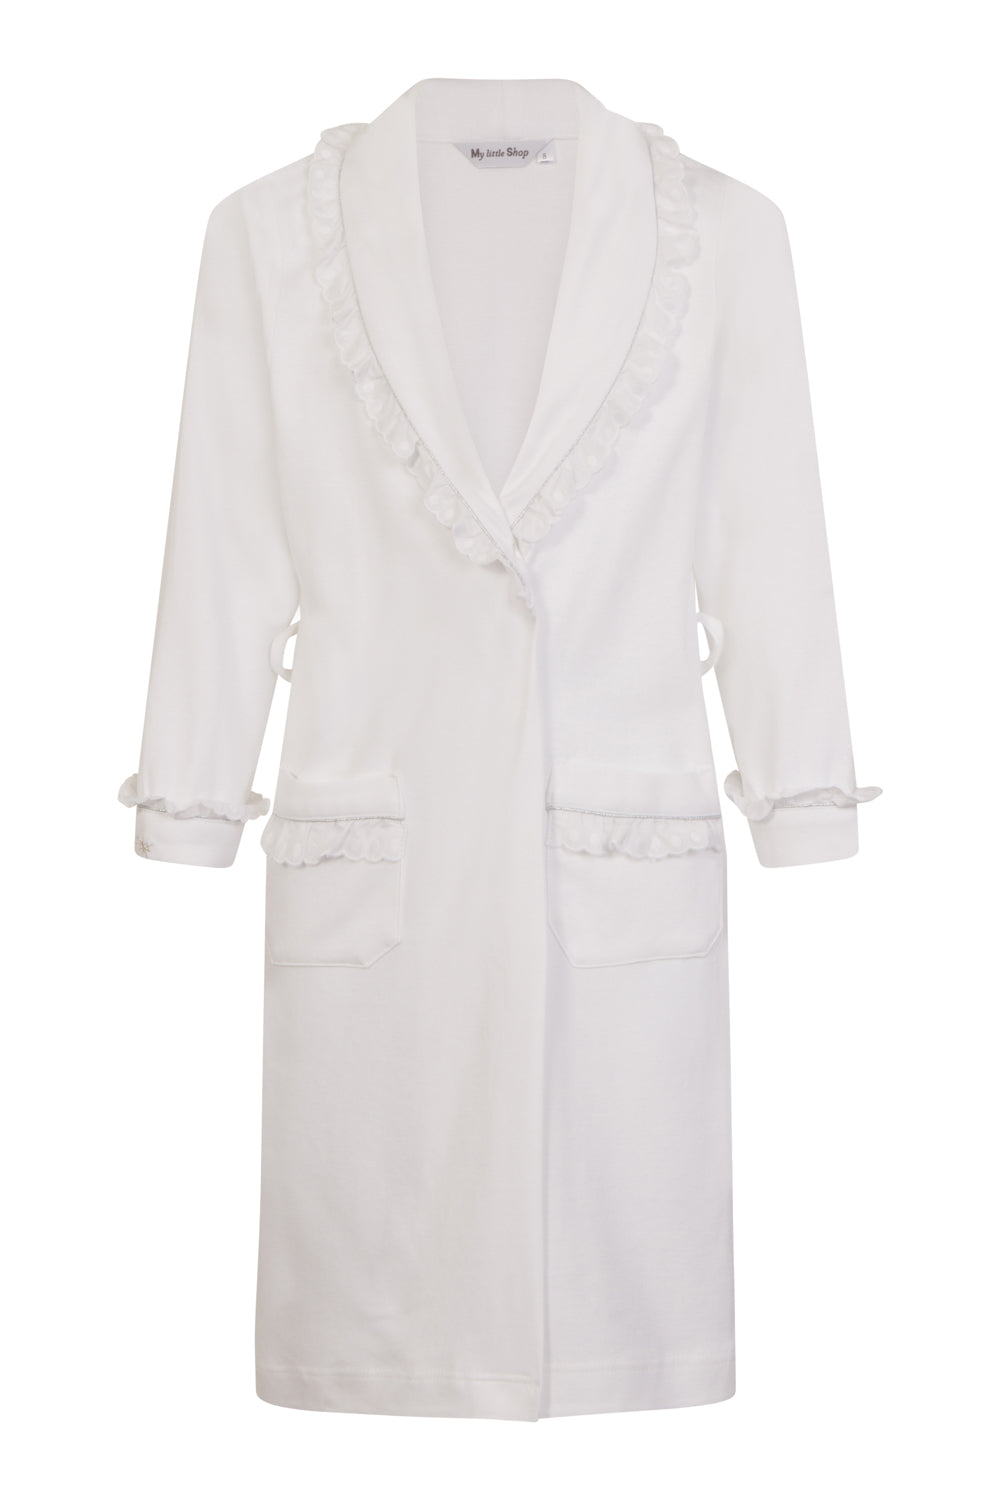 Sweety Organic Cotton Girls Bathrobe